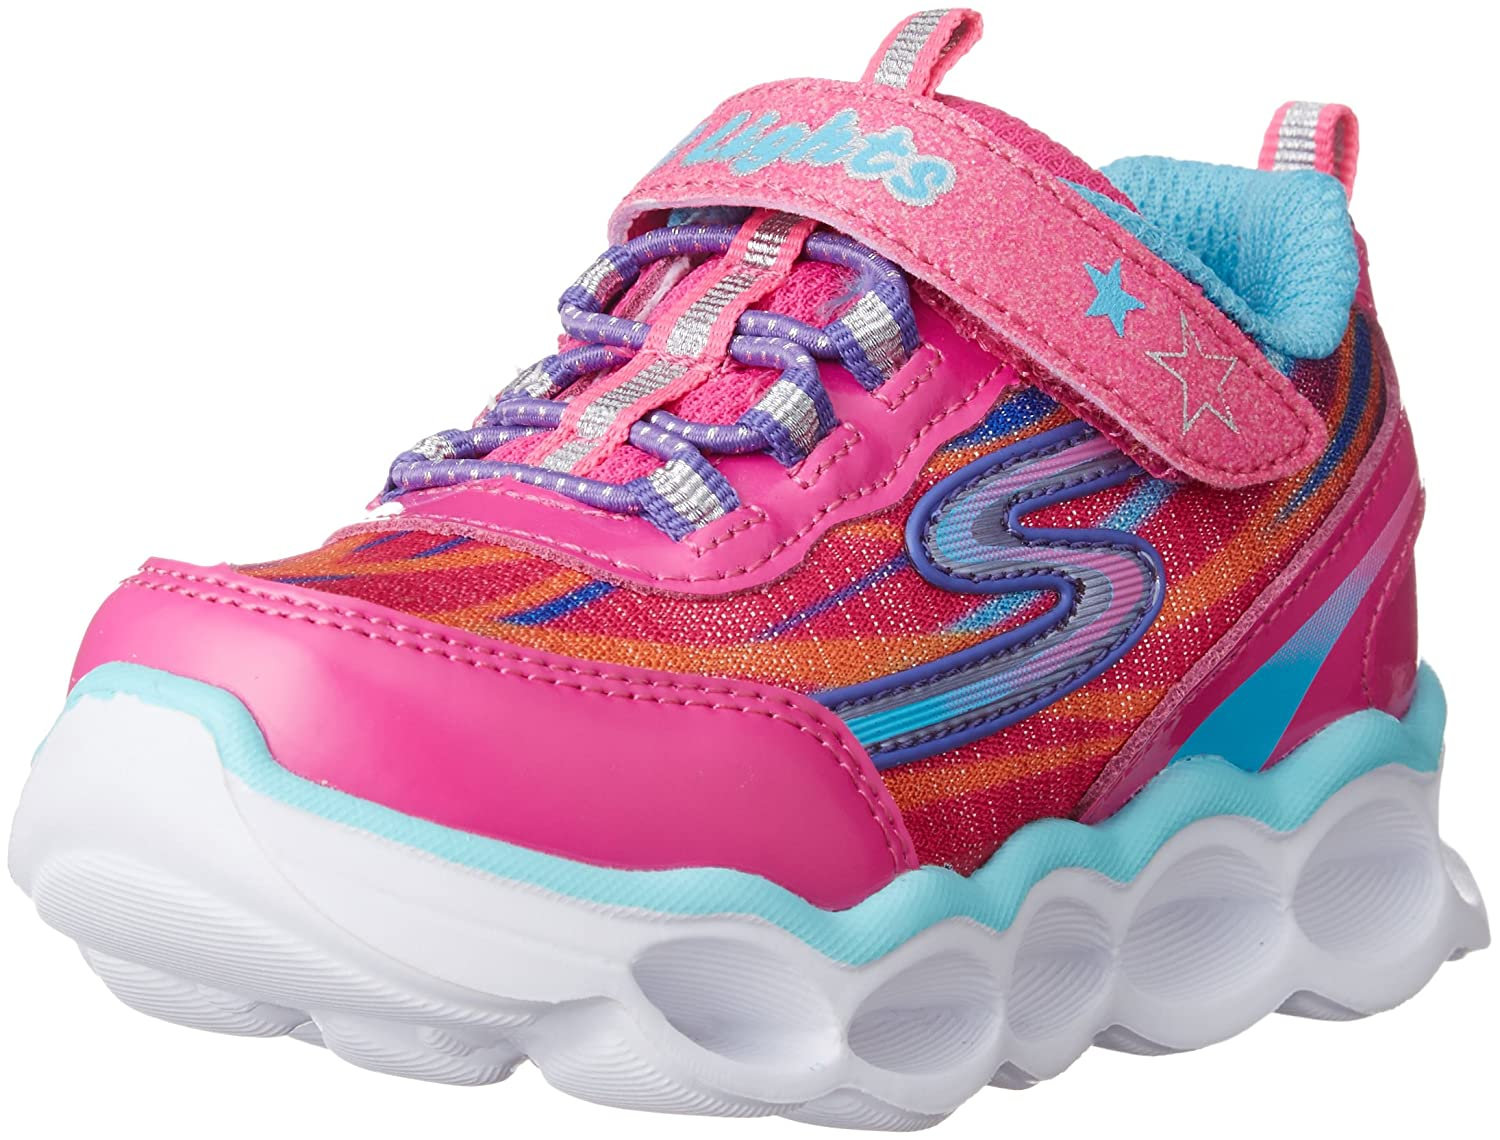 Skechers Kids Lumos Light-Up Sneakers (Toddler/Little Kid) 10613L